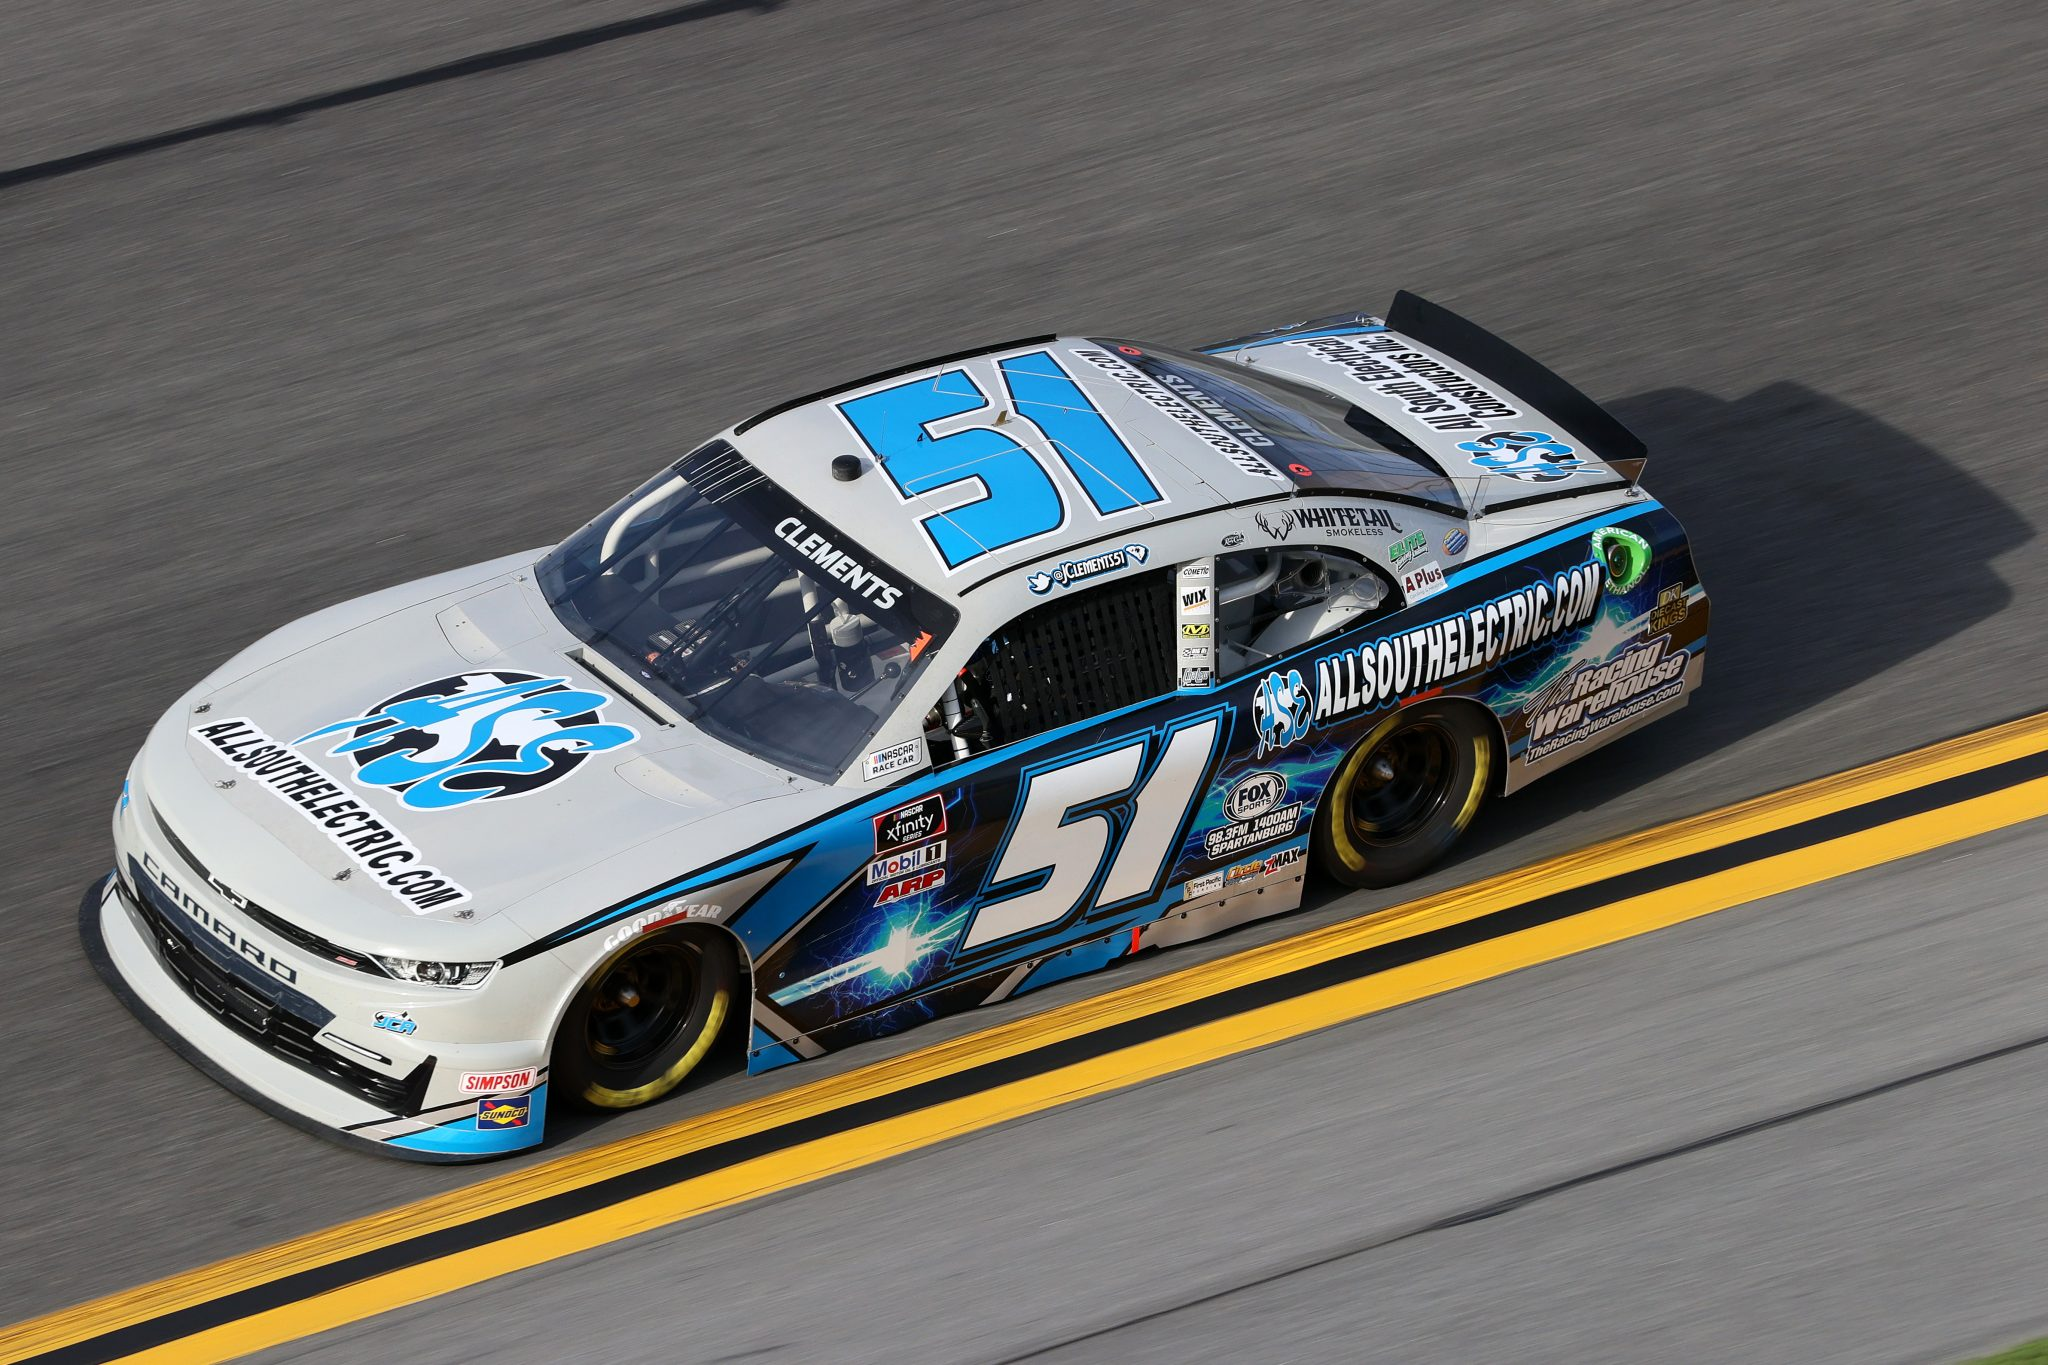 DAYTONA BEACH, FLORIDA - FEBRUARY 12: Jeremy Clements, driver of the #51 All South Electric Chevrolet, practices for the NASCAR Xfinity Series Beef. It's What's For Dinner. 300 at Daytona International Speedway on February 12, 2021 in Daytona Beach, Florida. (Photo by James Gilbert/Getty Images) | Getty Images